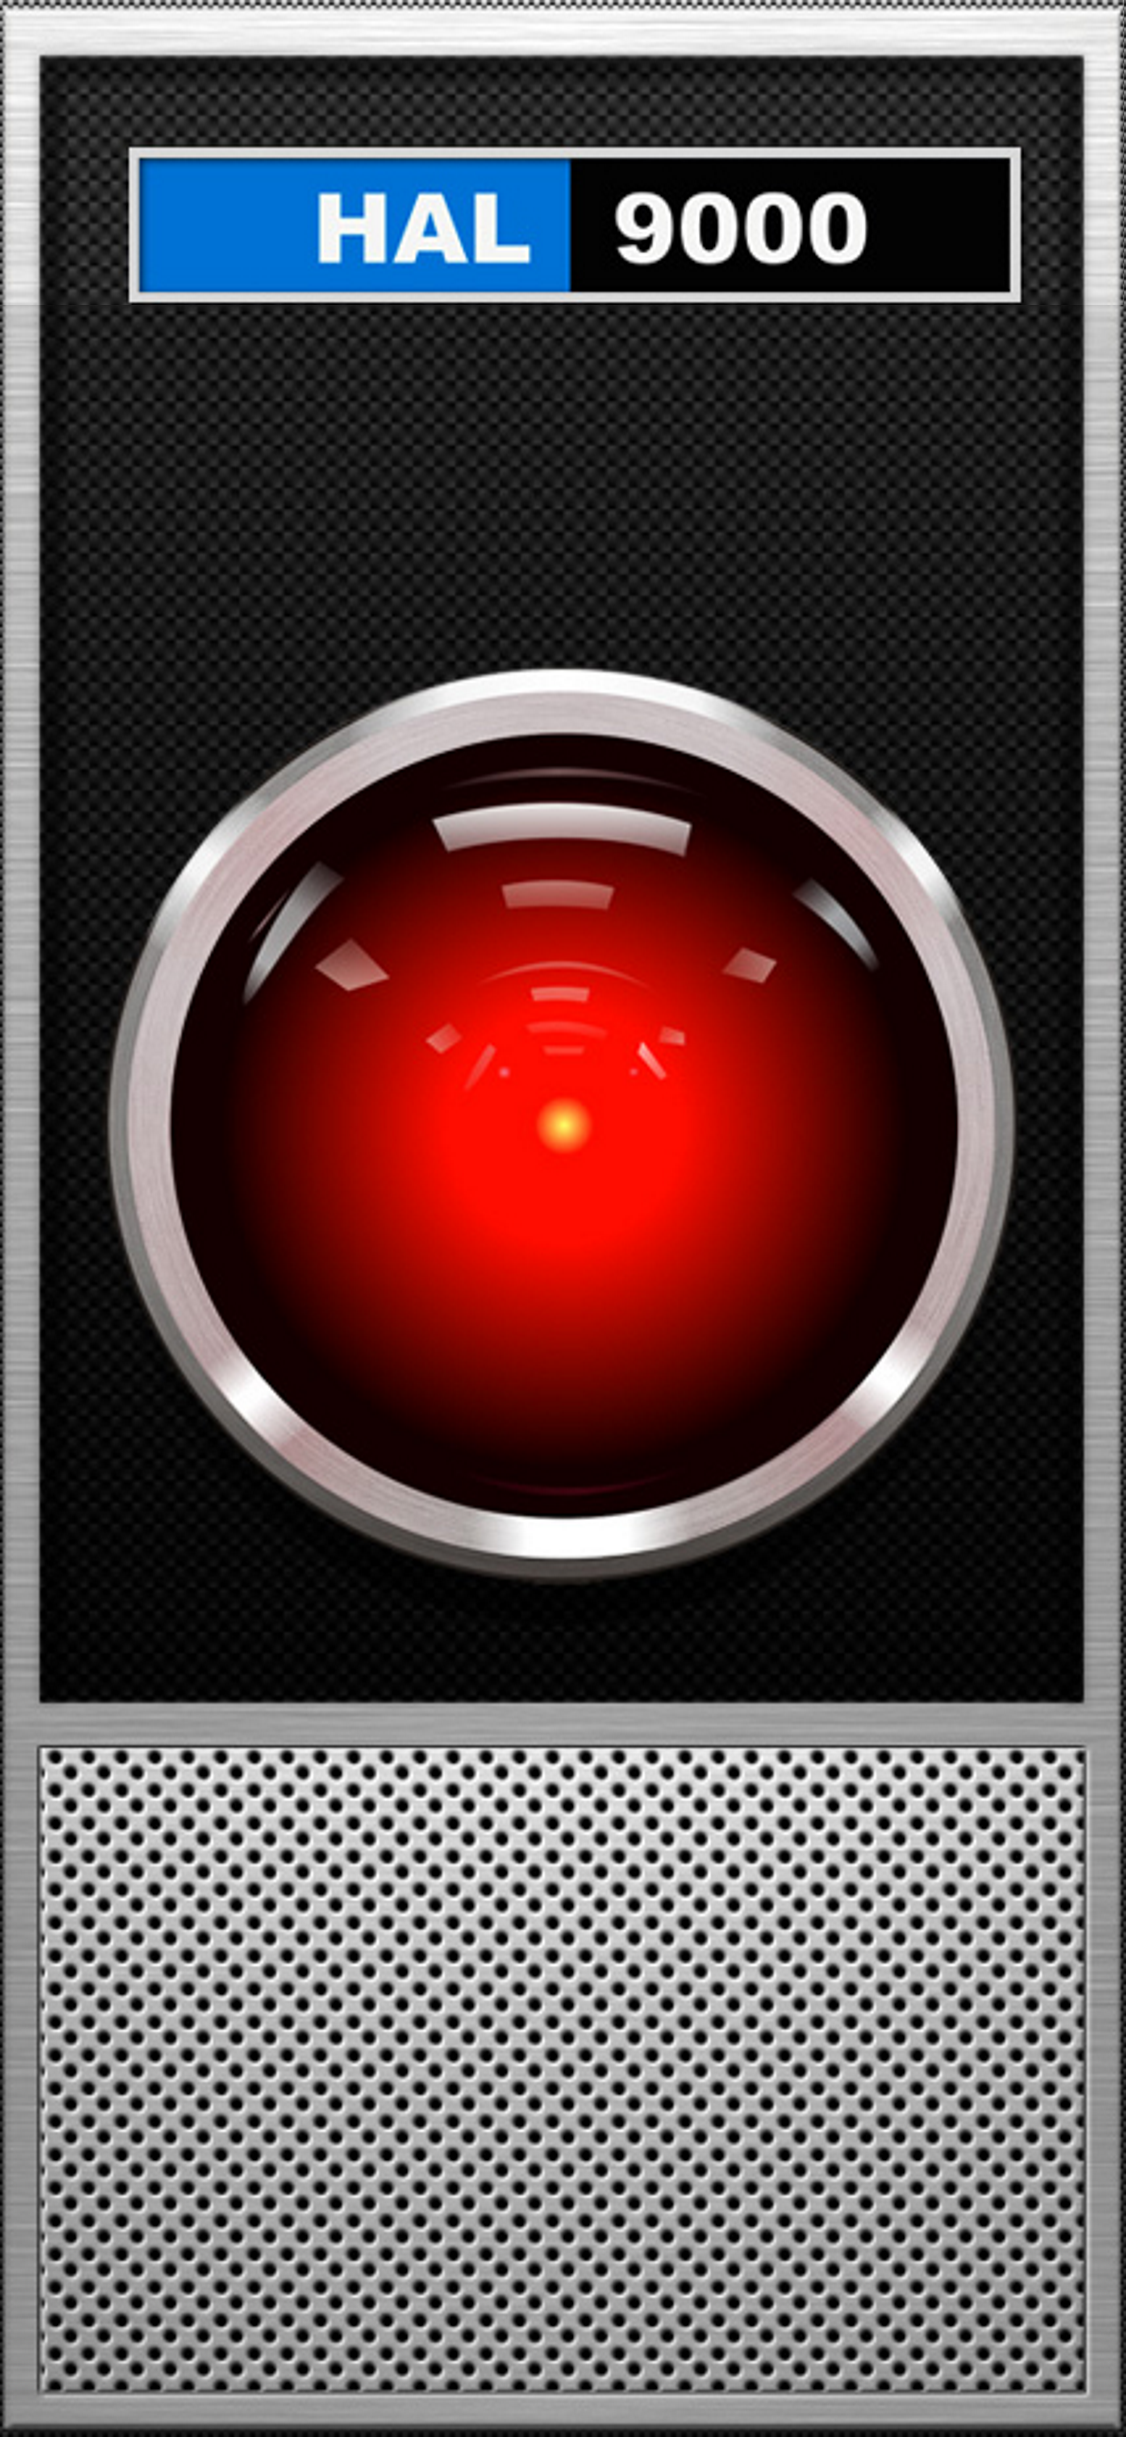 01 Hal9000 Interface Wallpaper For Iphone X Static Iphone Wallpaper Cool Wallpapers For Phones Wallpaper